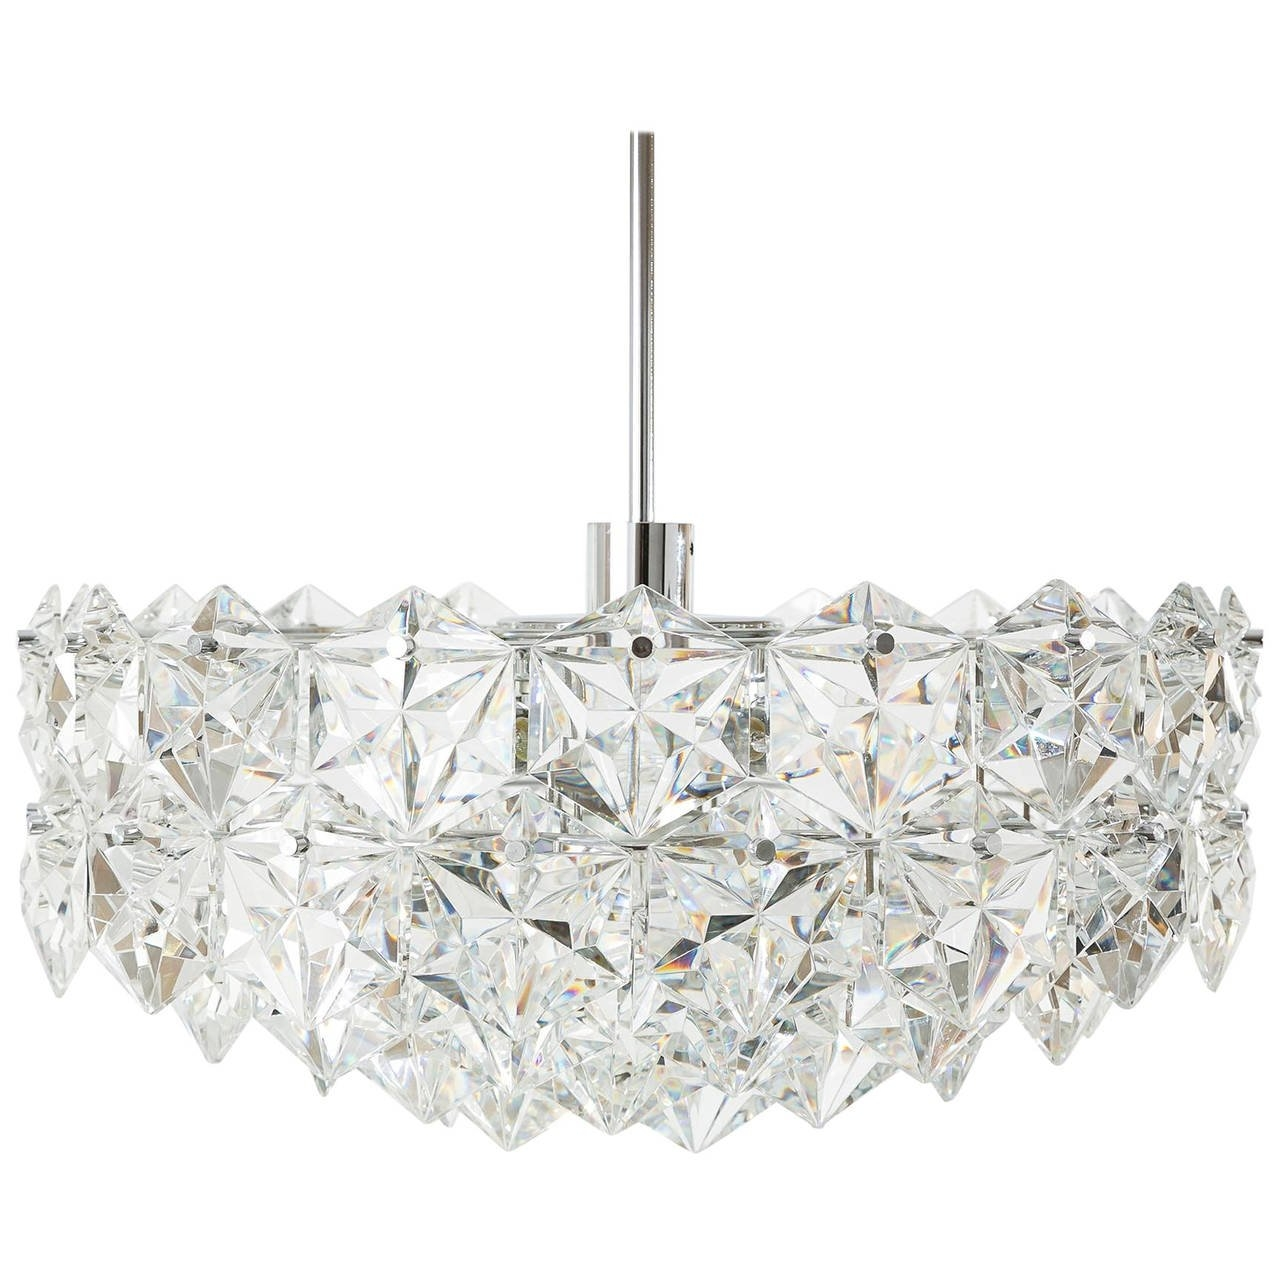 Large Kinkeldey Chandelier Or Flush Mount Light Fixture Crystal With Regard To Large Glass Chandelier (View 9 of 15)